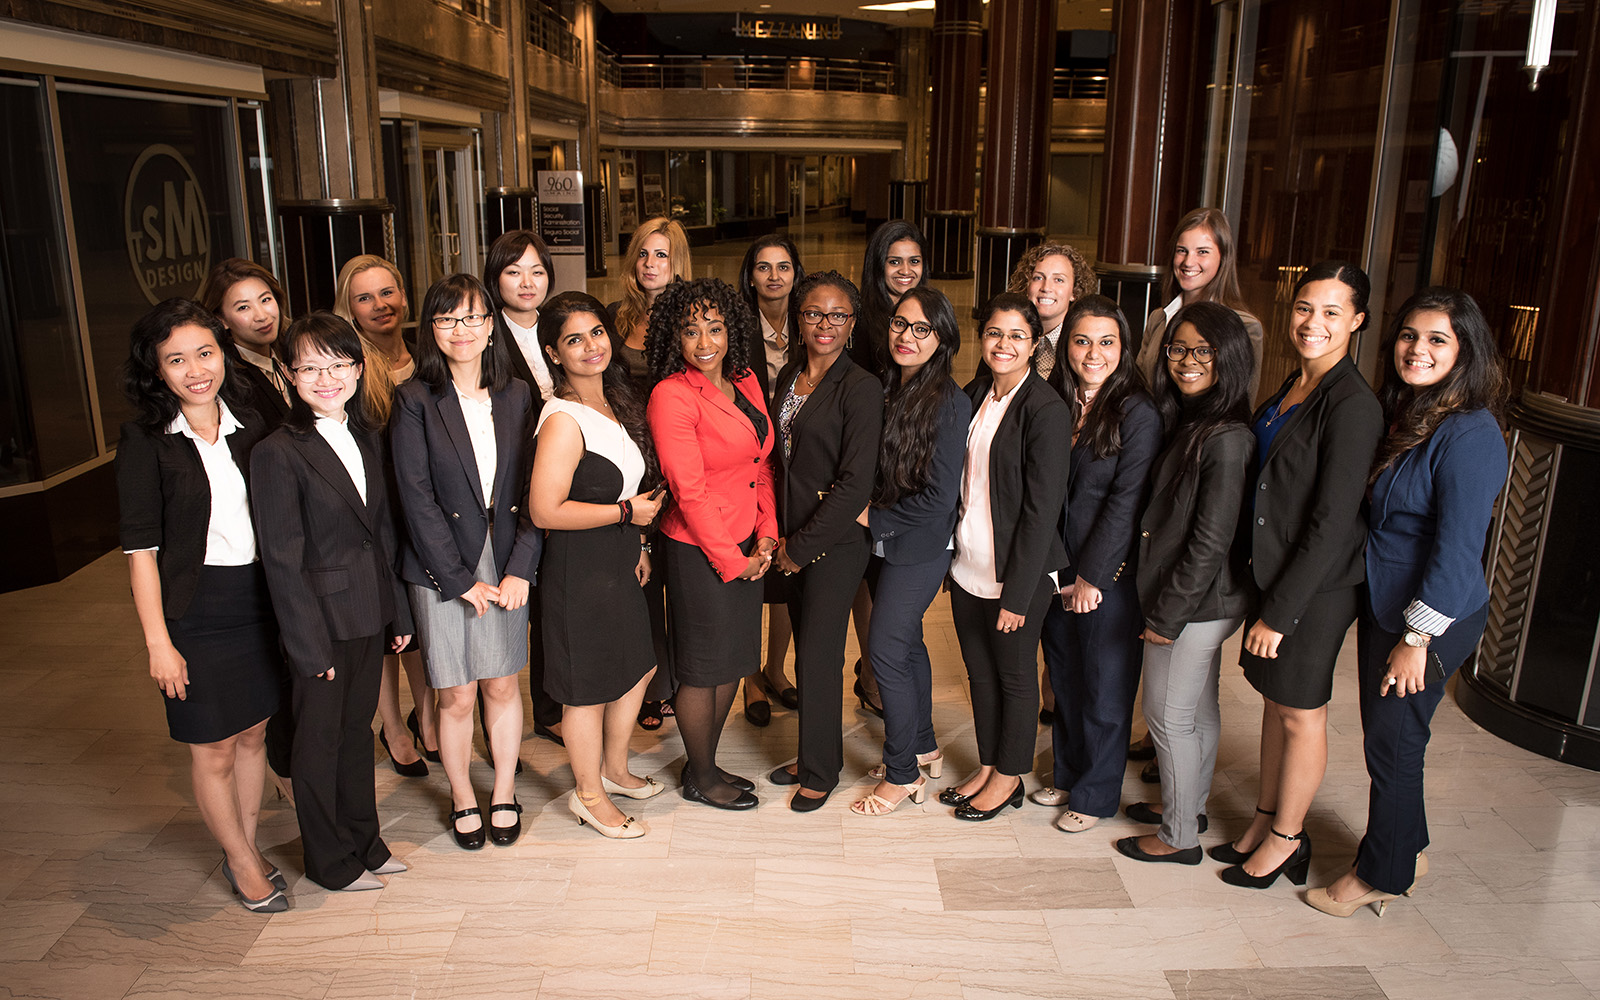 This year's Full-time MBA class is 40 percent women, up 10 percent from last year, and includes students from 16 countries in addition to the United States. (Nathan Oldham/UConn School of Business)